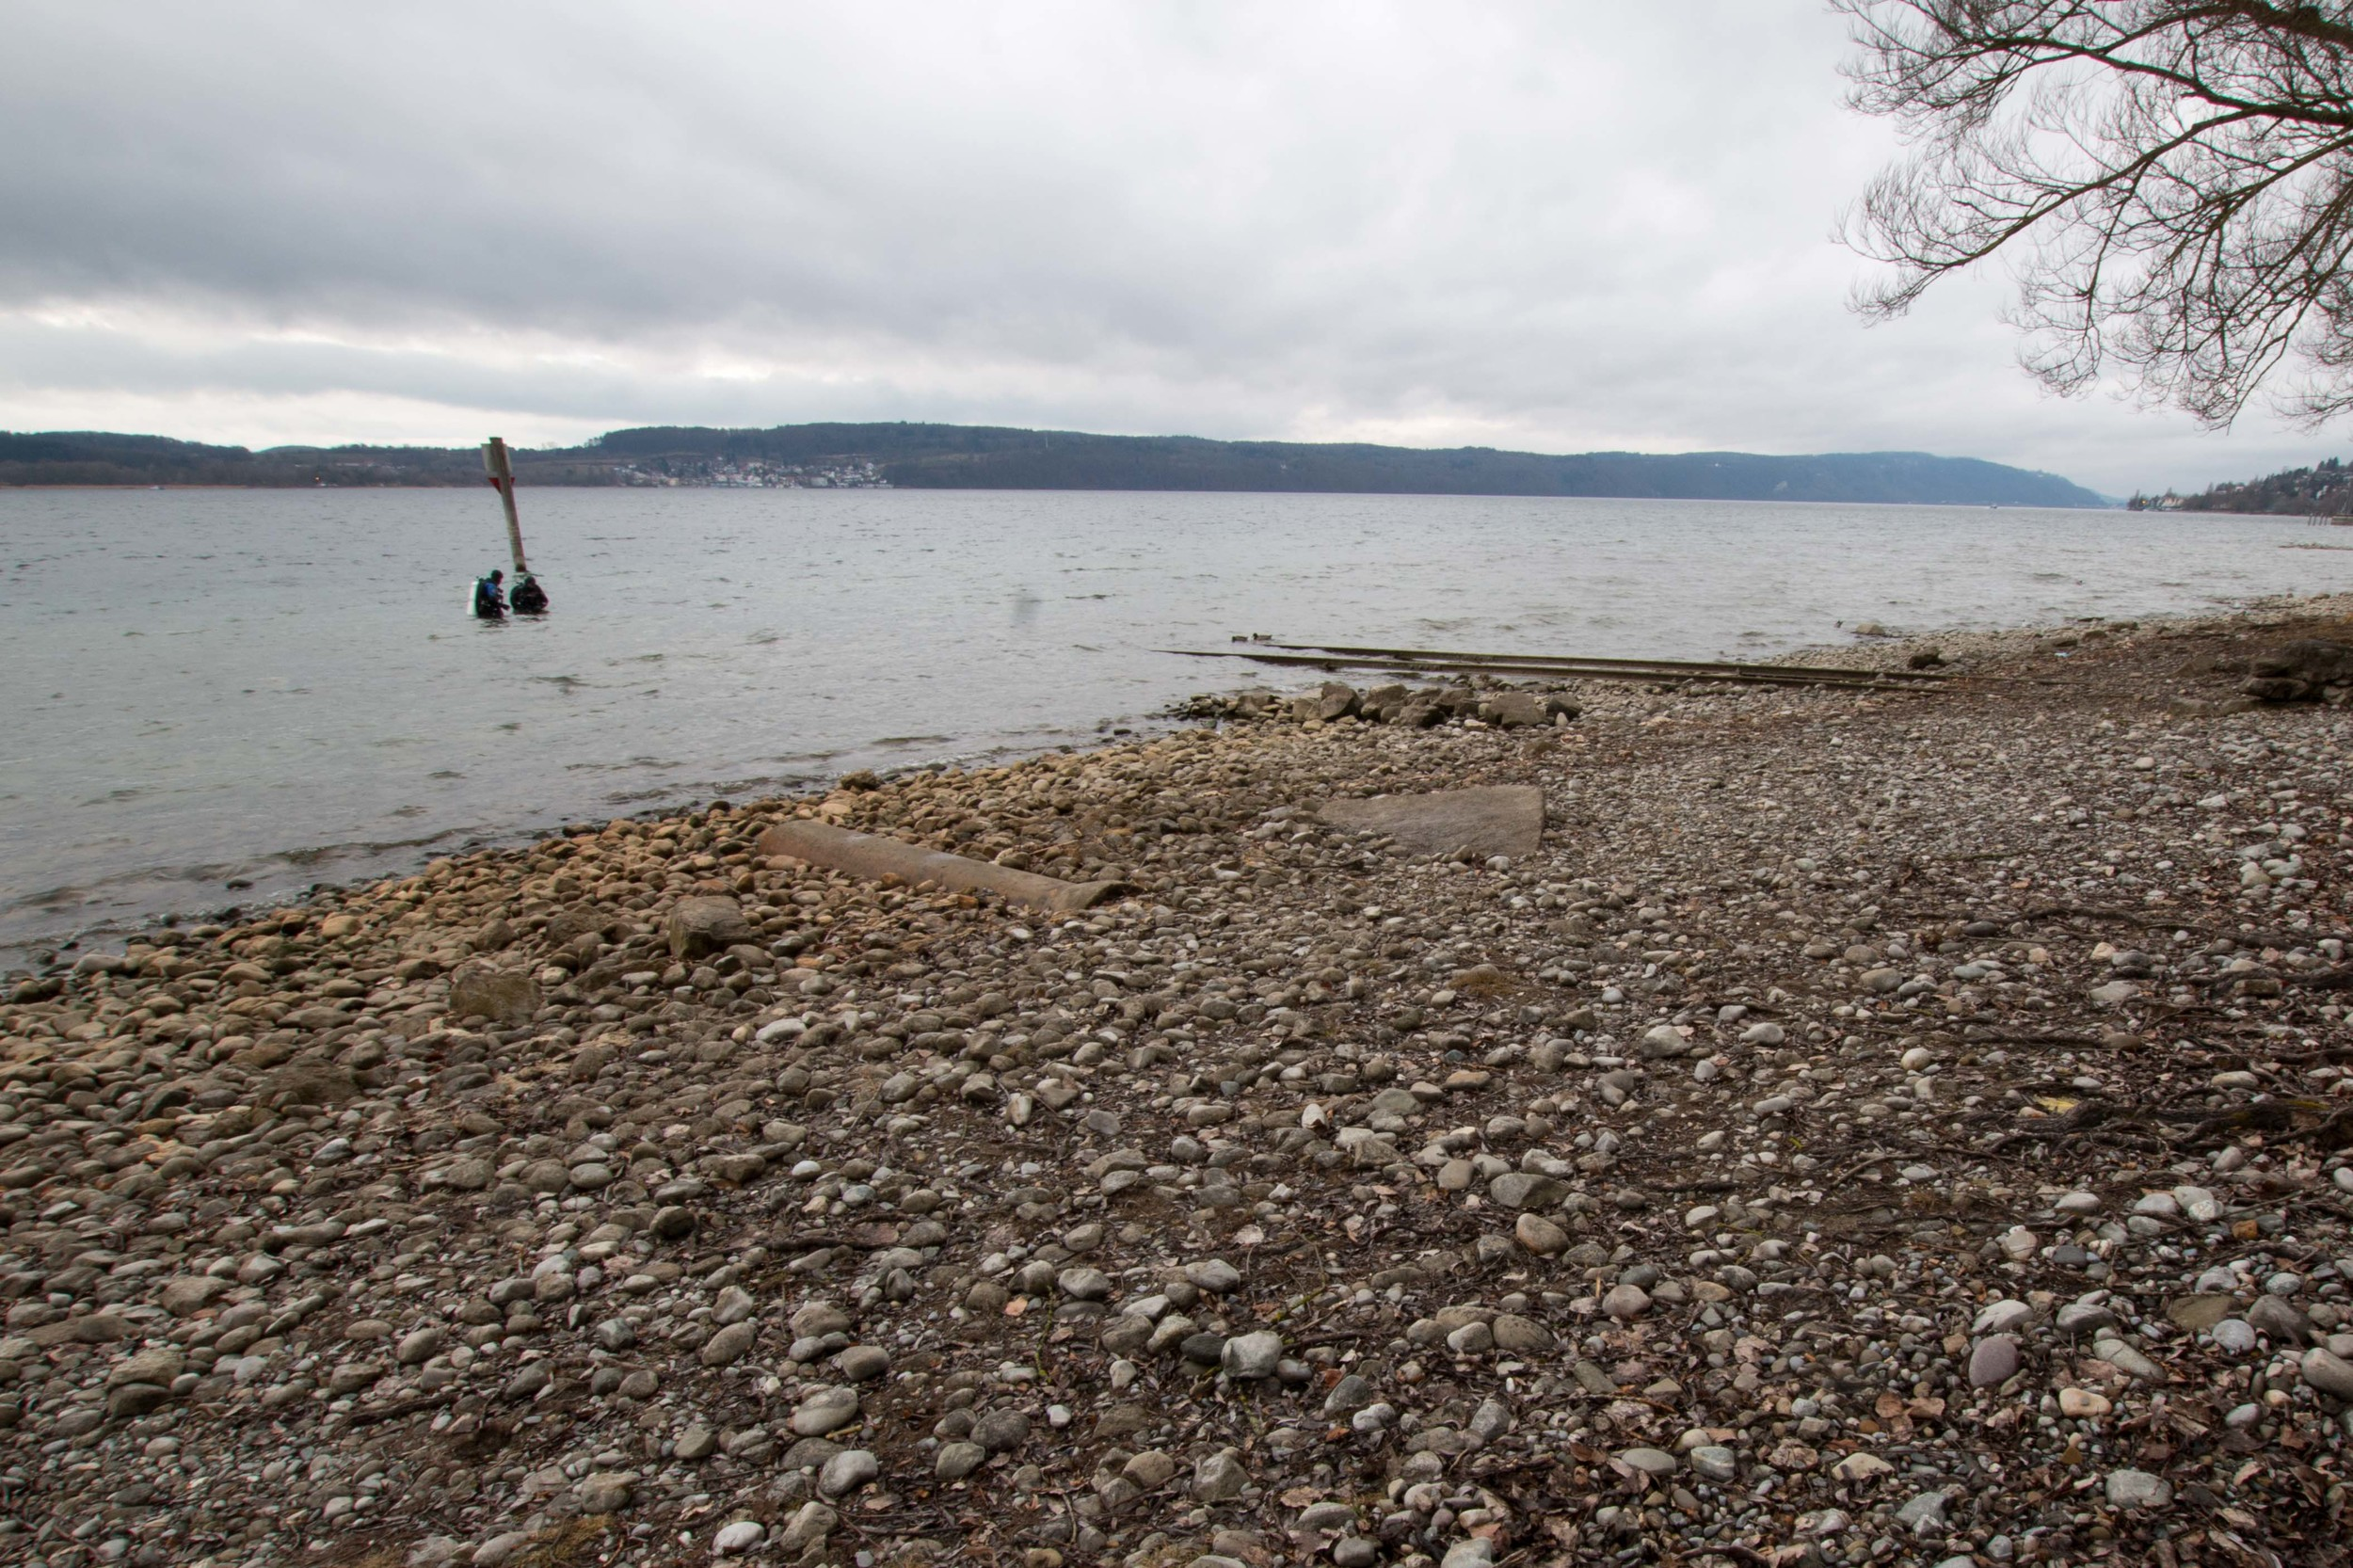 Tennisplätze dive site on the eastern side of Bodensee, not far from Überlingen